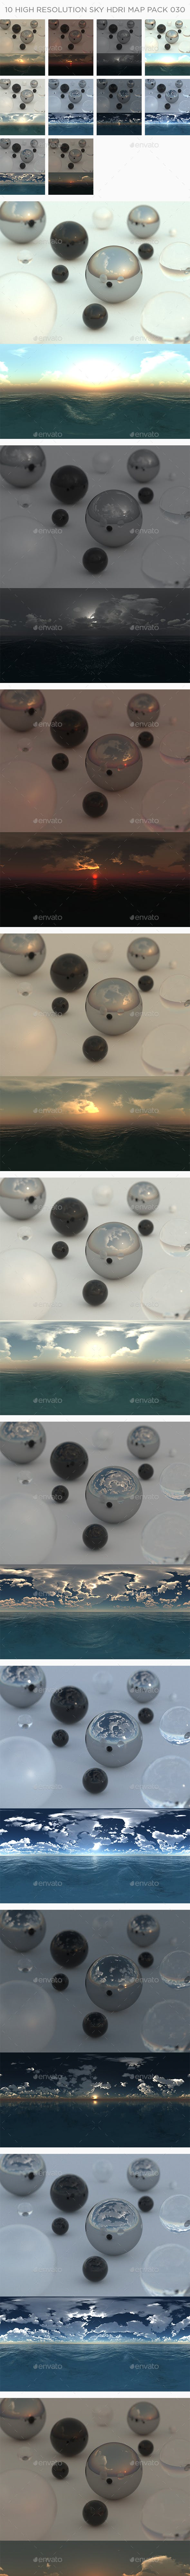 10 High Resolution Sky HDRi Maps Pack 030 - 3DOcean Item for Sale